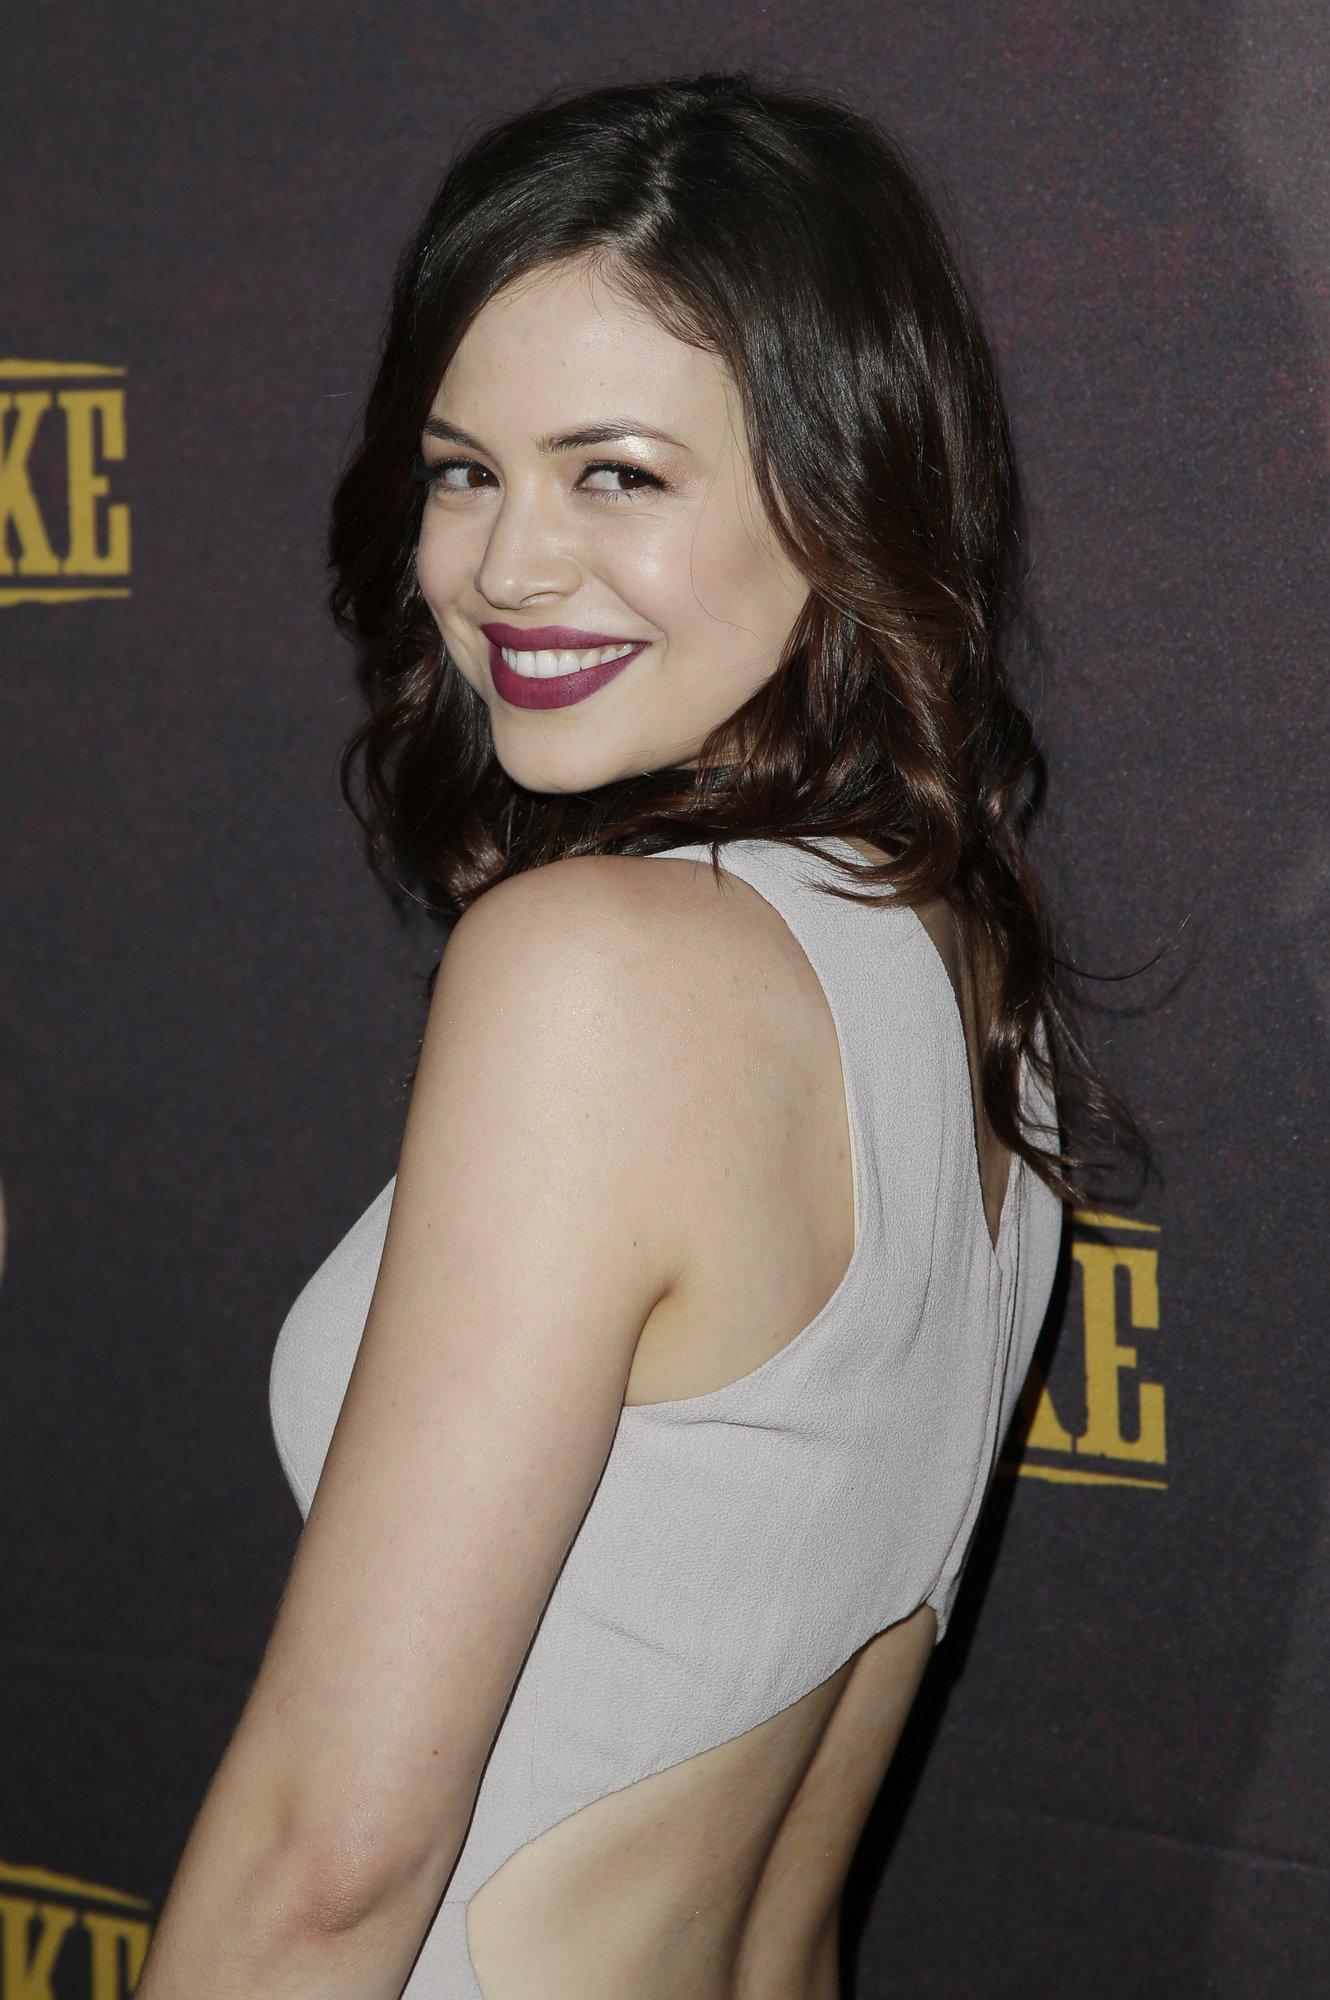 Conor leslie. Has Conor Leslie ever been nude?